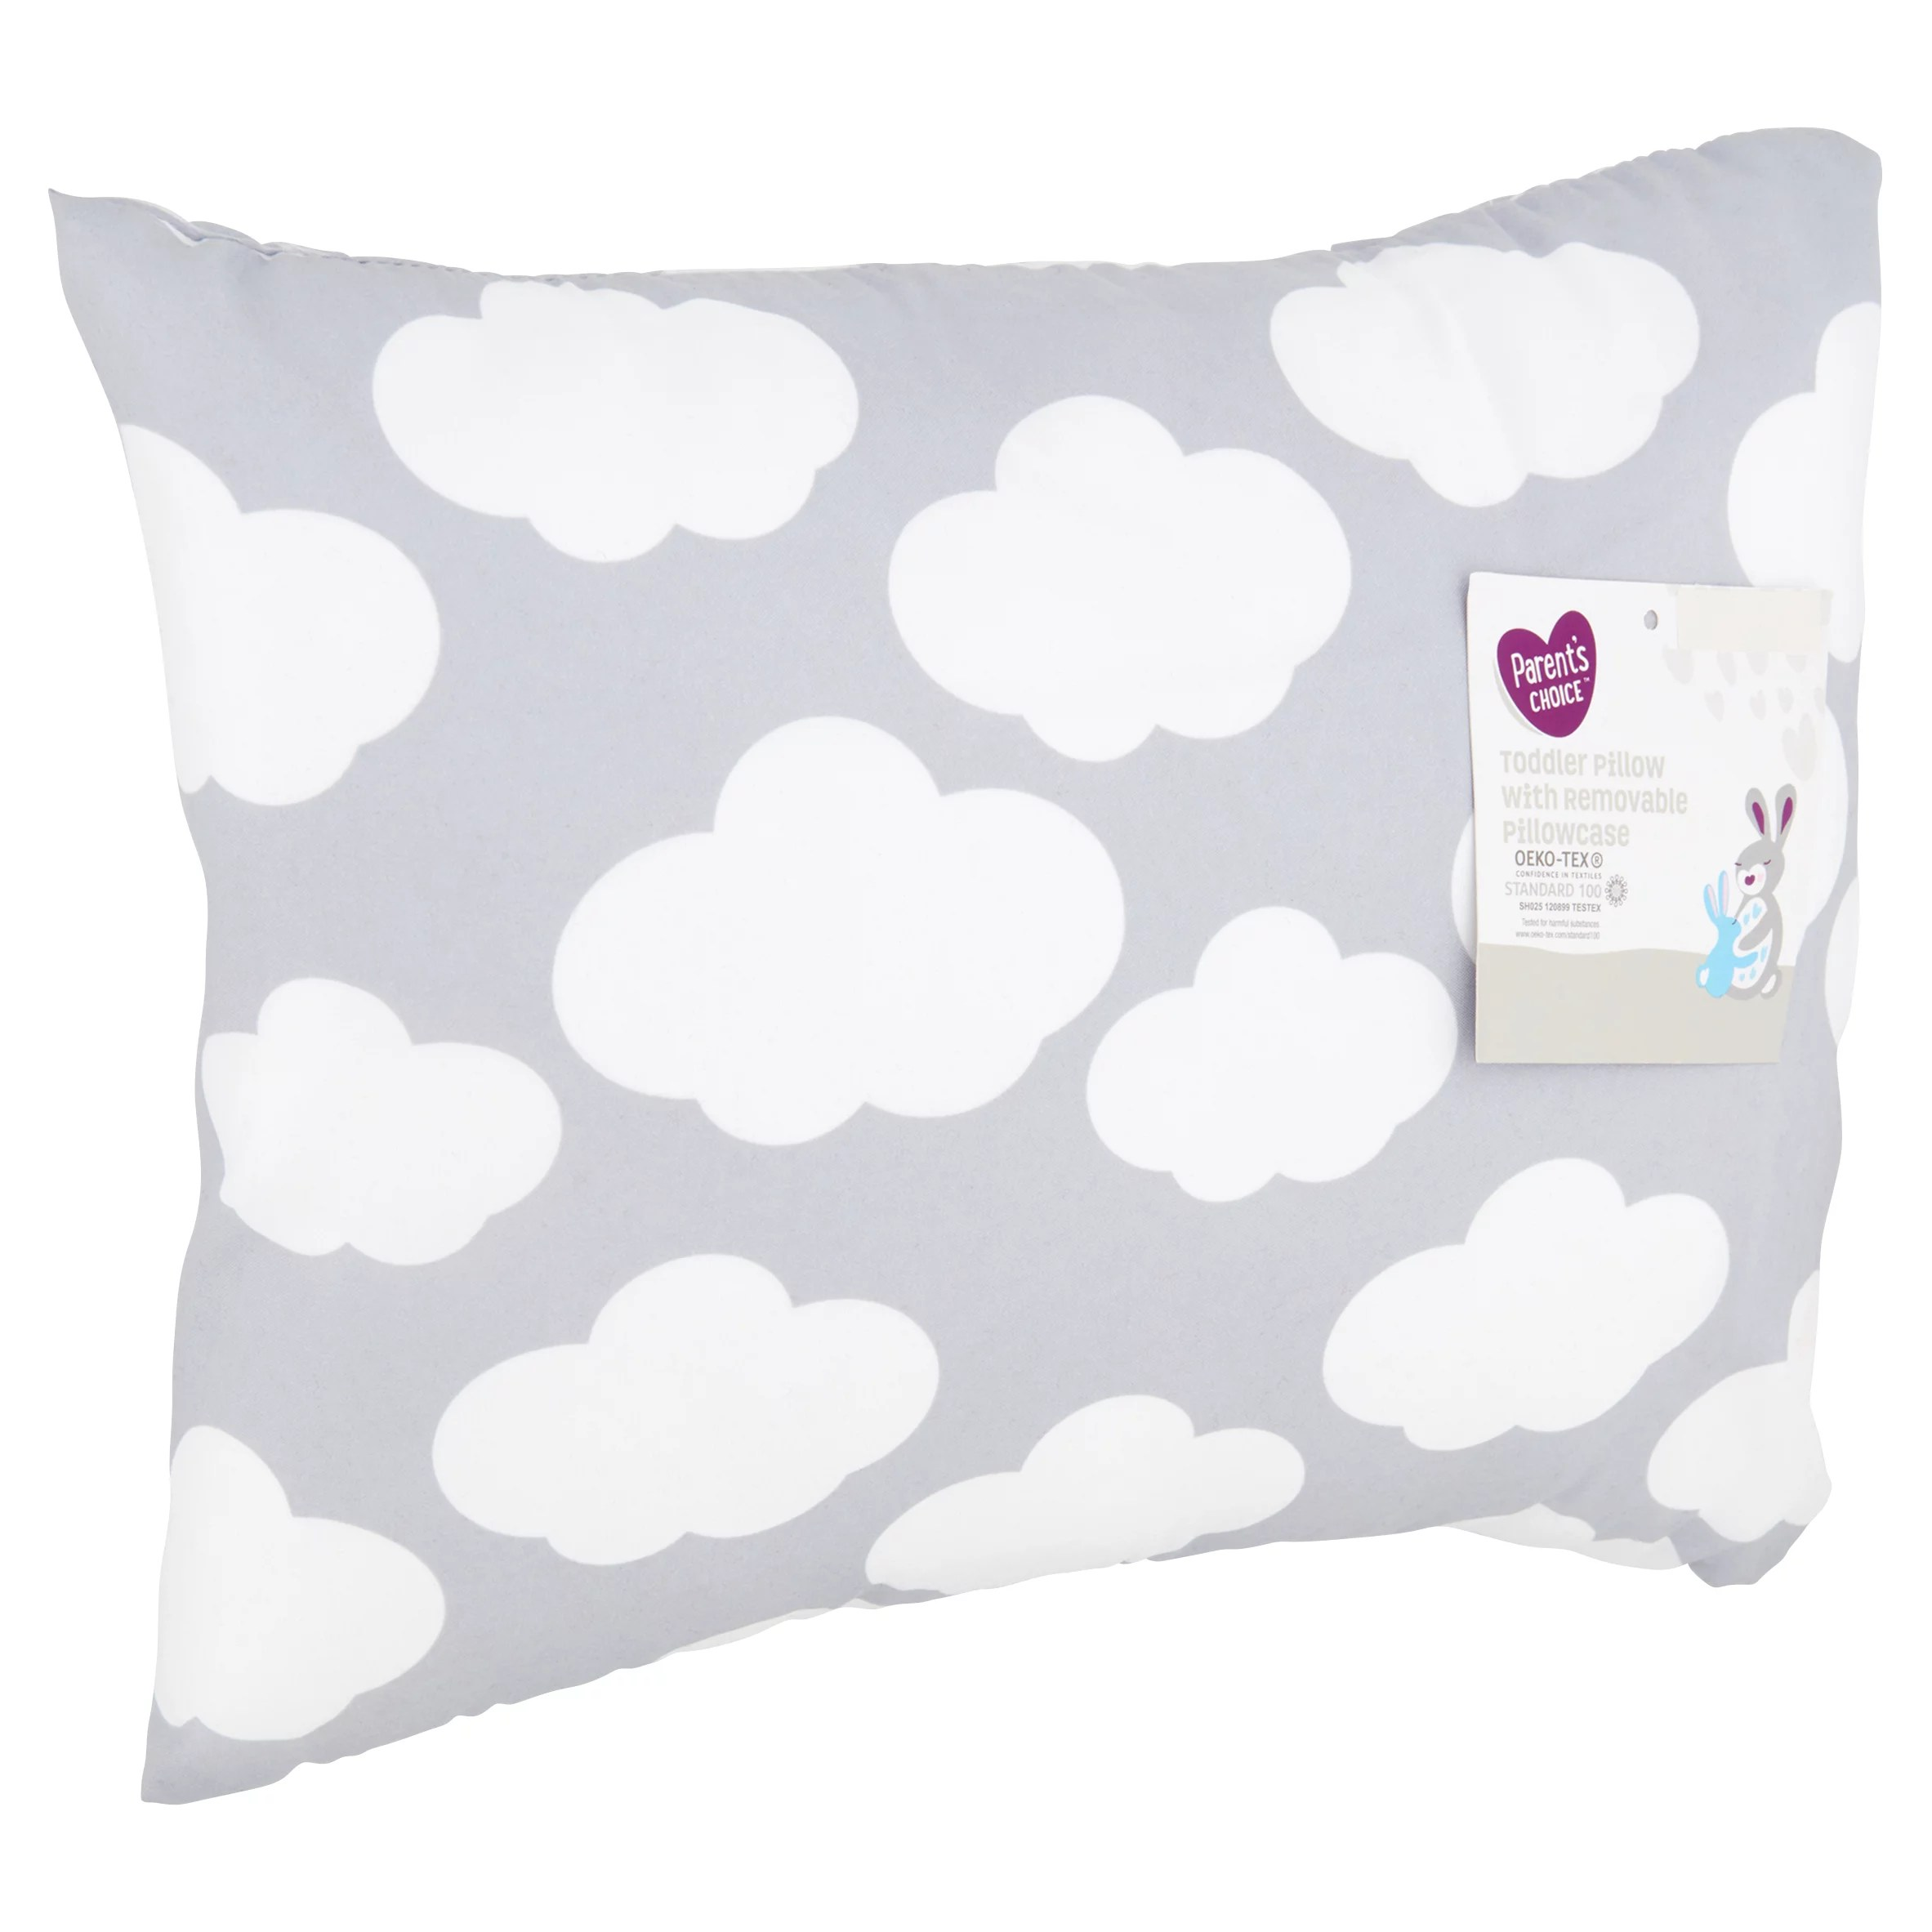 parent s choice toddler pillow with removable pillowcase